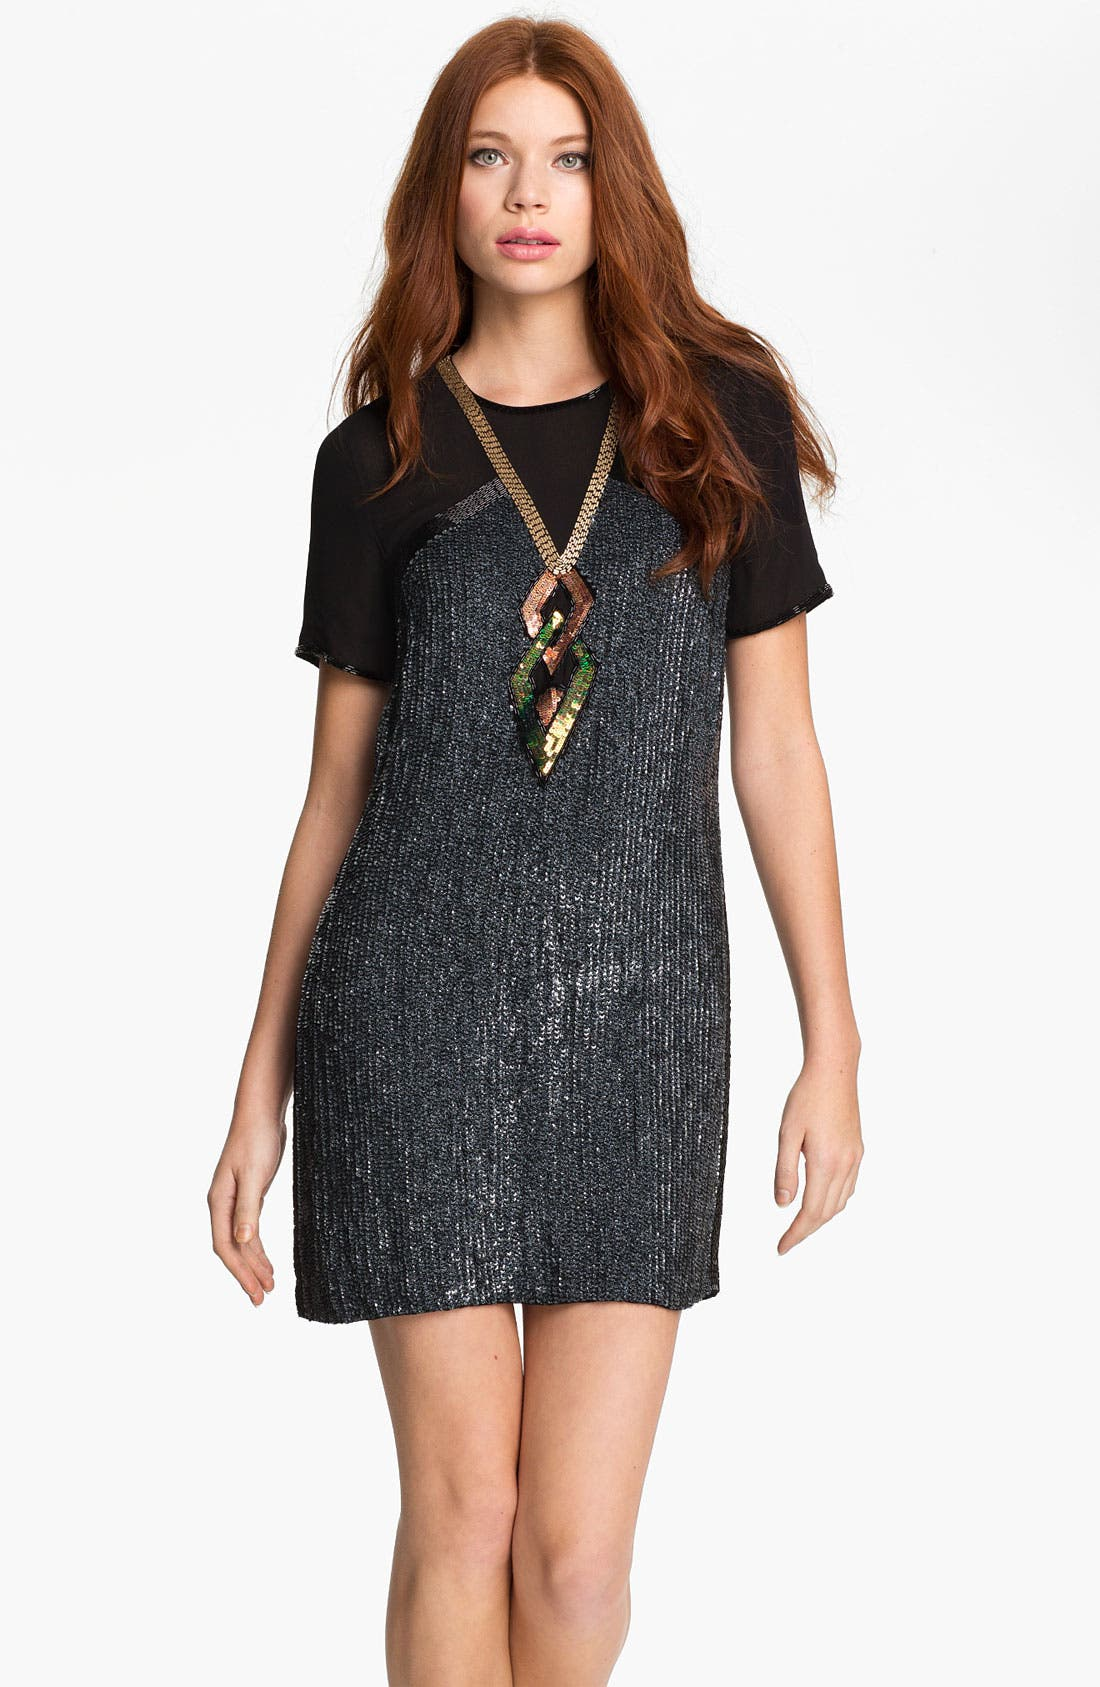 Main Image - French Connection 'Shoot to Thrill' Sequin Shirt Dress